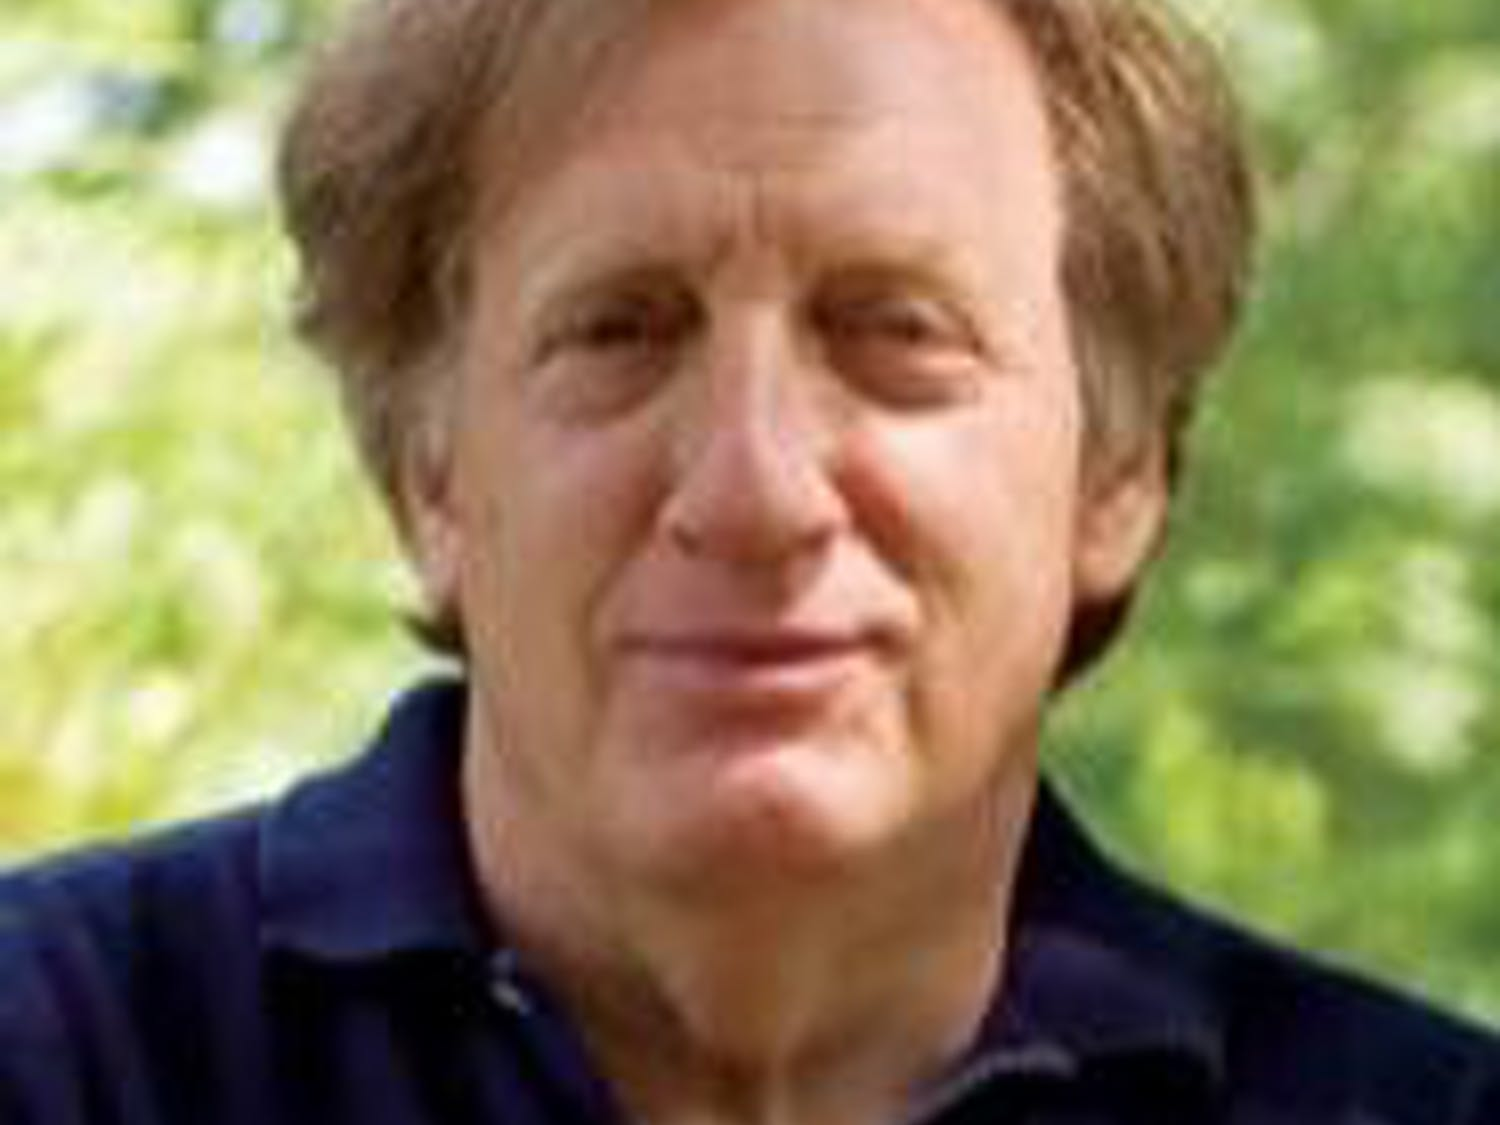 From television to Broadway, Alan Zweibel is a prolific figure in the comedy world who has made waves across every medium. From his time at UB in the 70's, Zweibel found his niche taking a comedic approach to tumultuous time that would take him on a path of continued success in the entertainment world.